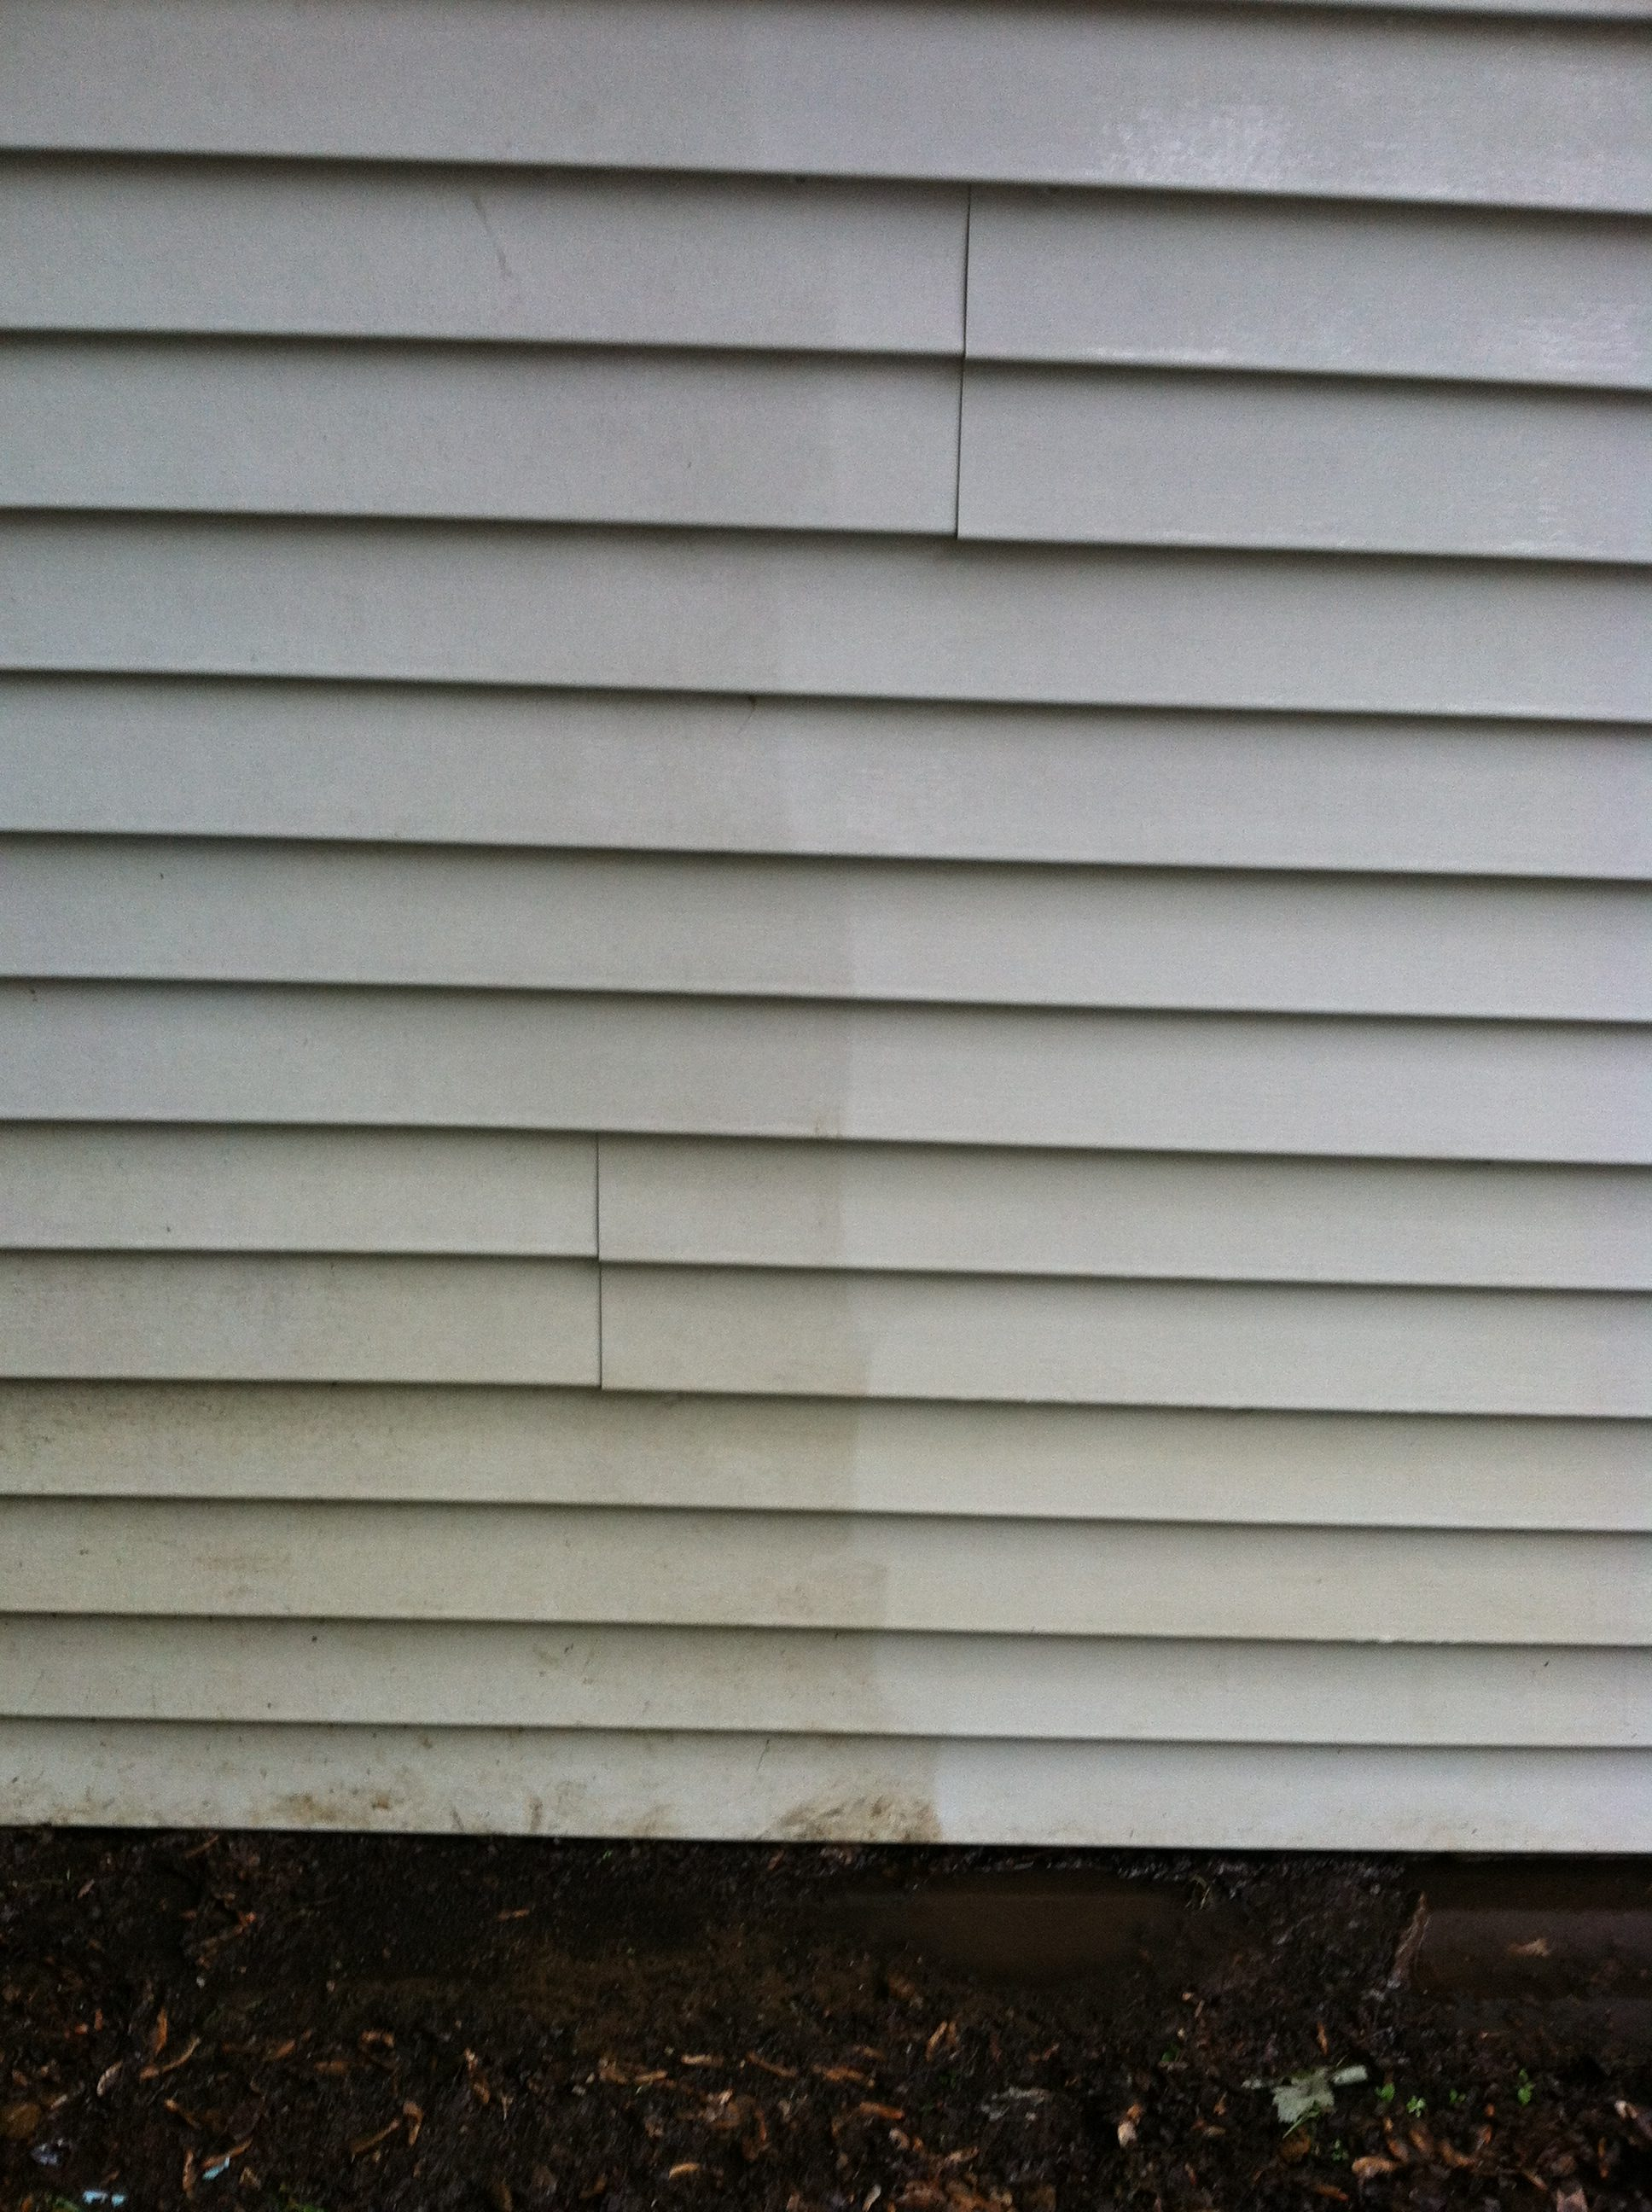 During - Direct Comparison Between Dirty and Clean Vinyl Siding